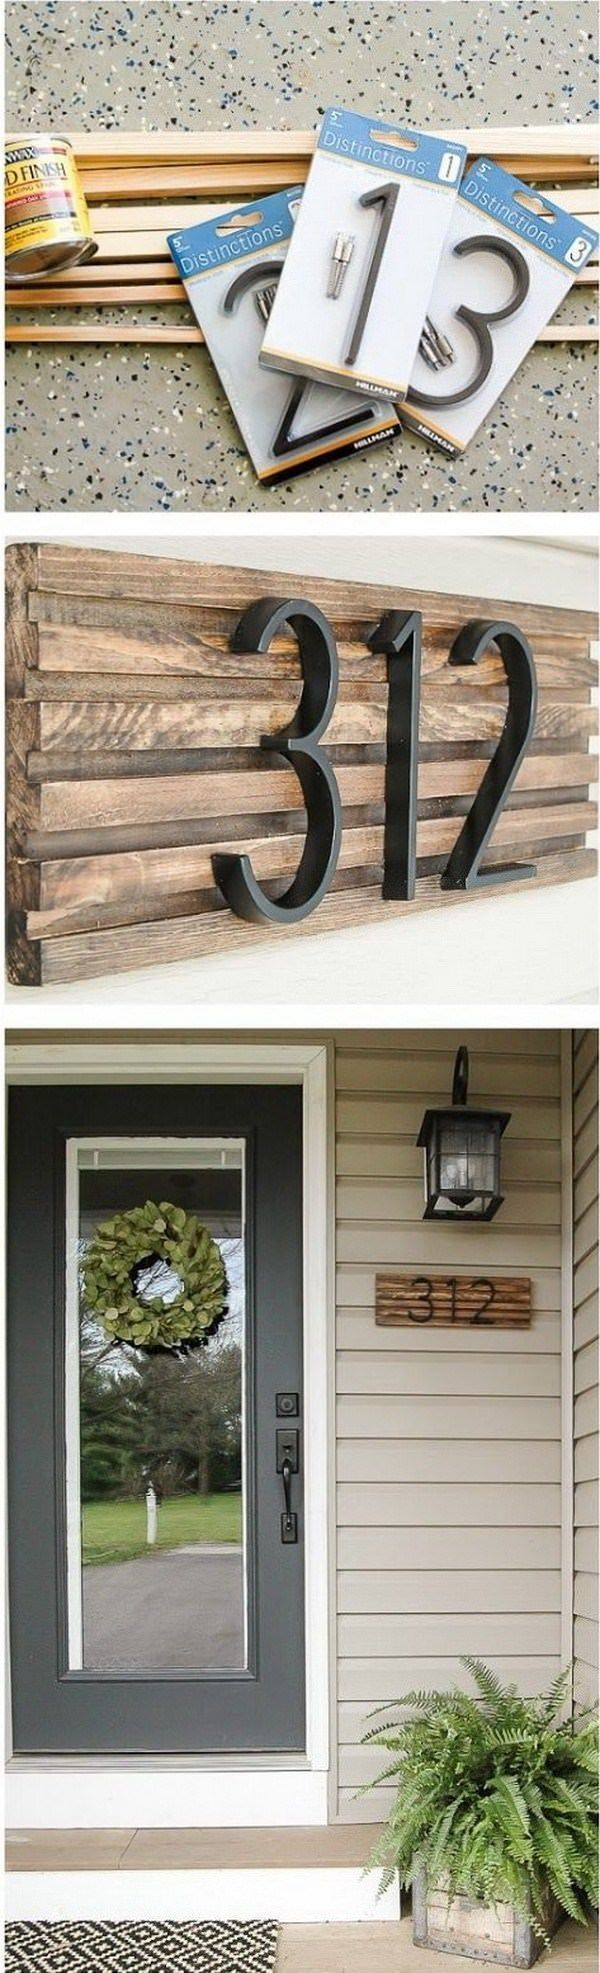 Rustic DIY Projects To Add Warmth To Your Farmhouse Decor #DIYHomeDecorCreative #FarmhouseLandscape